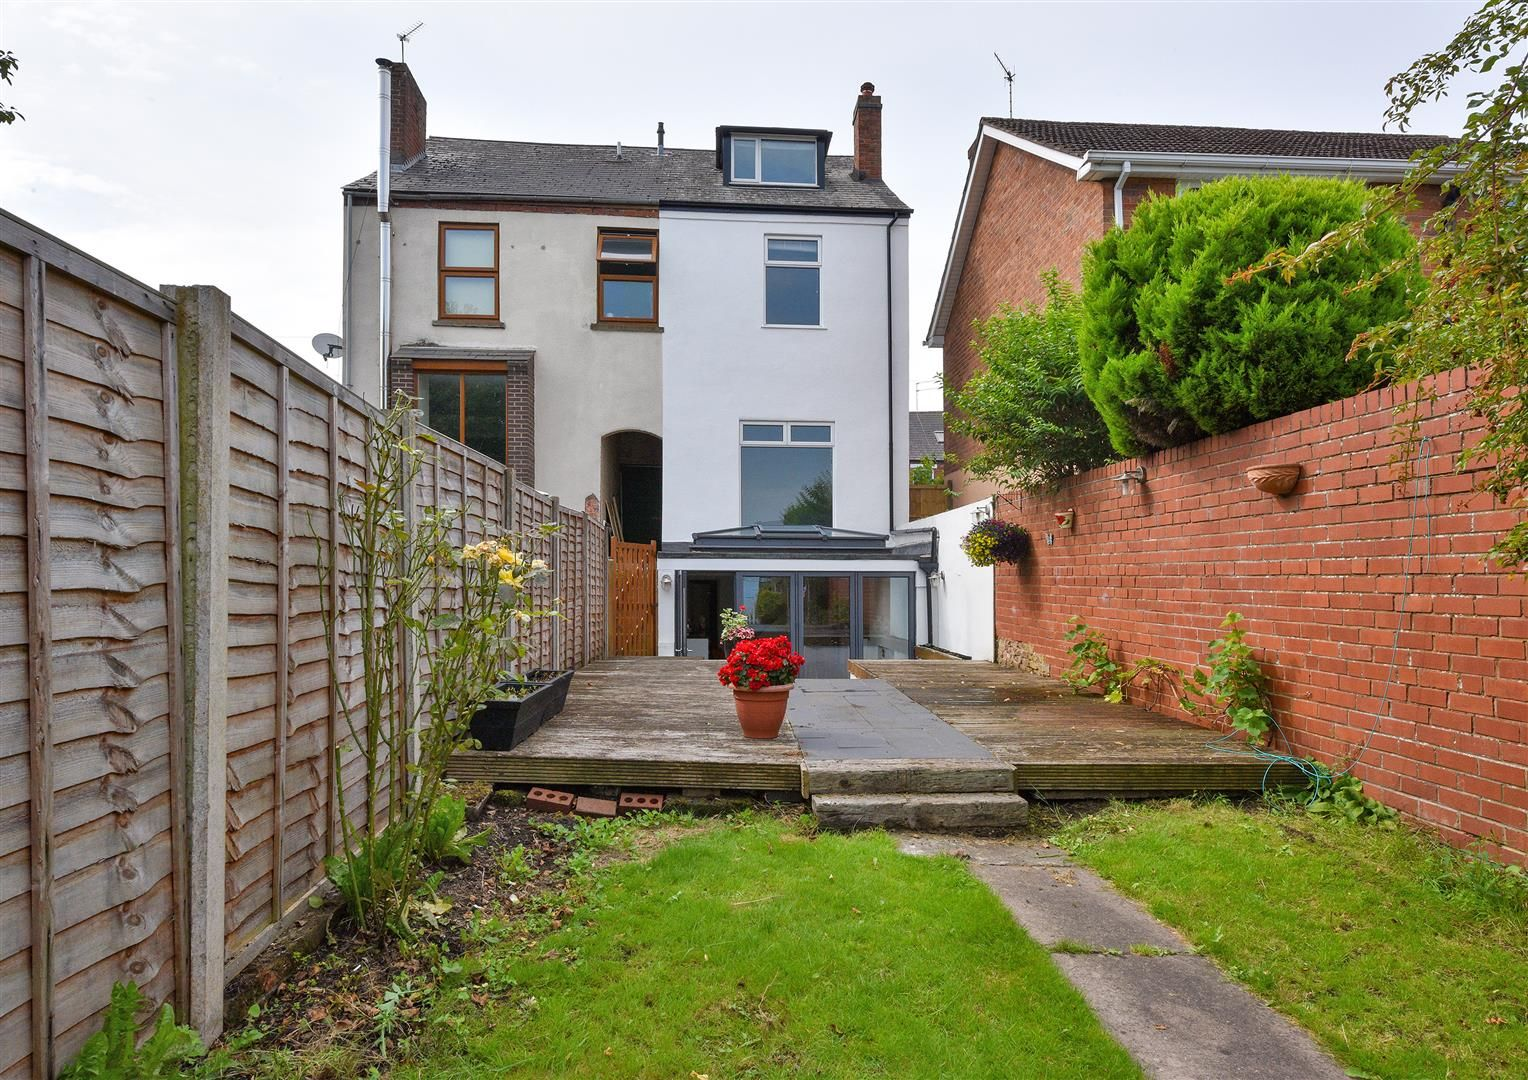 2 bed semi-detached for sale in Old Quarter  - Property Image 1